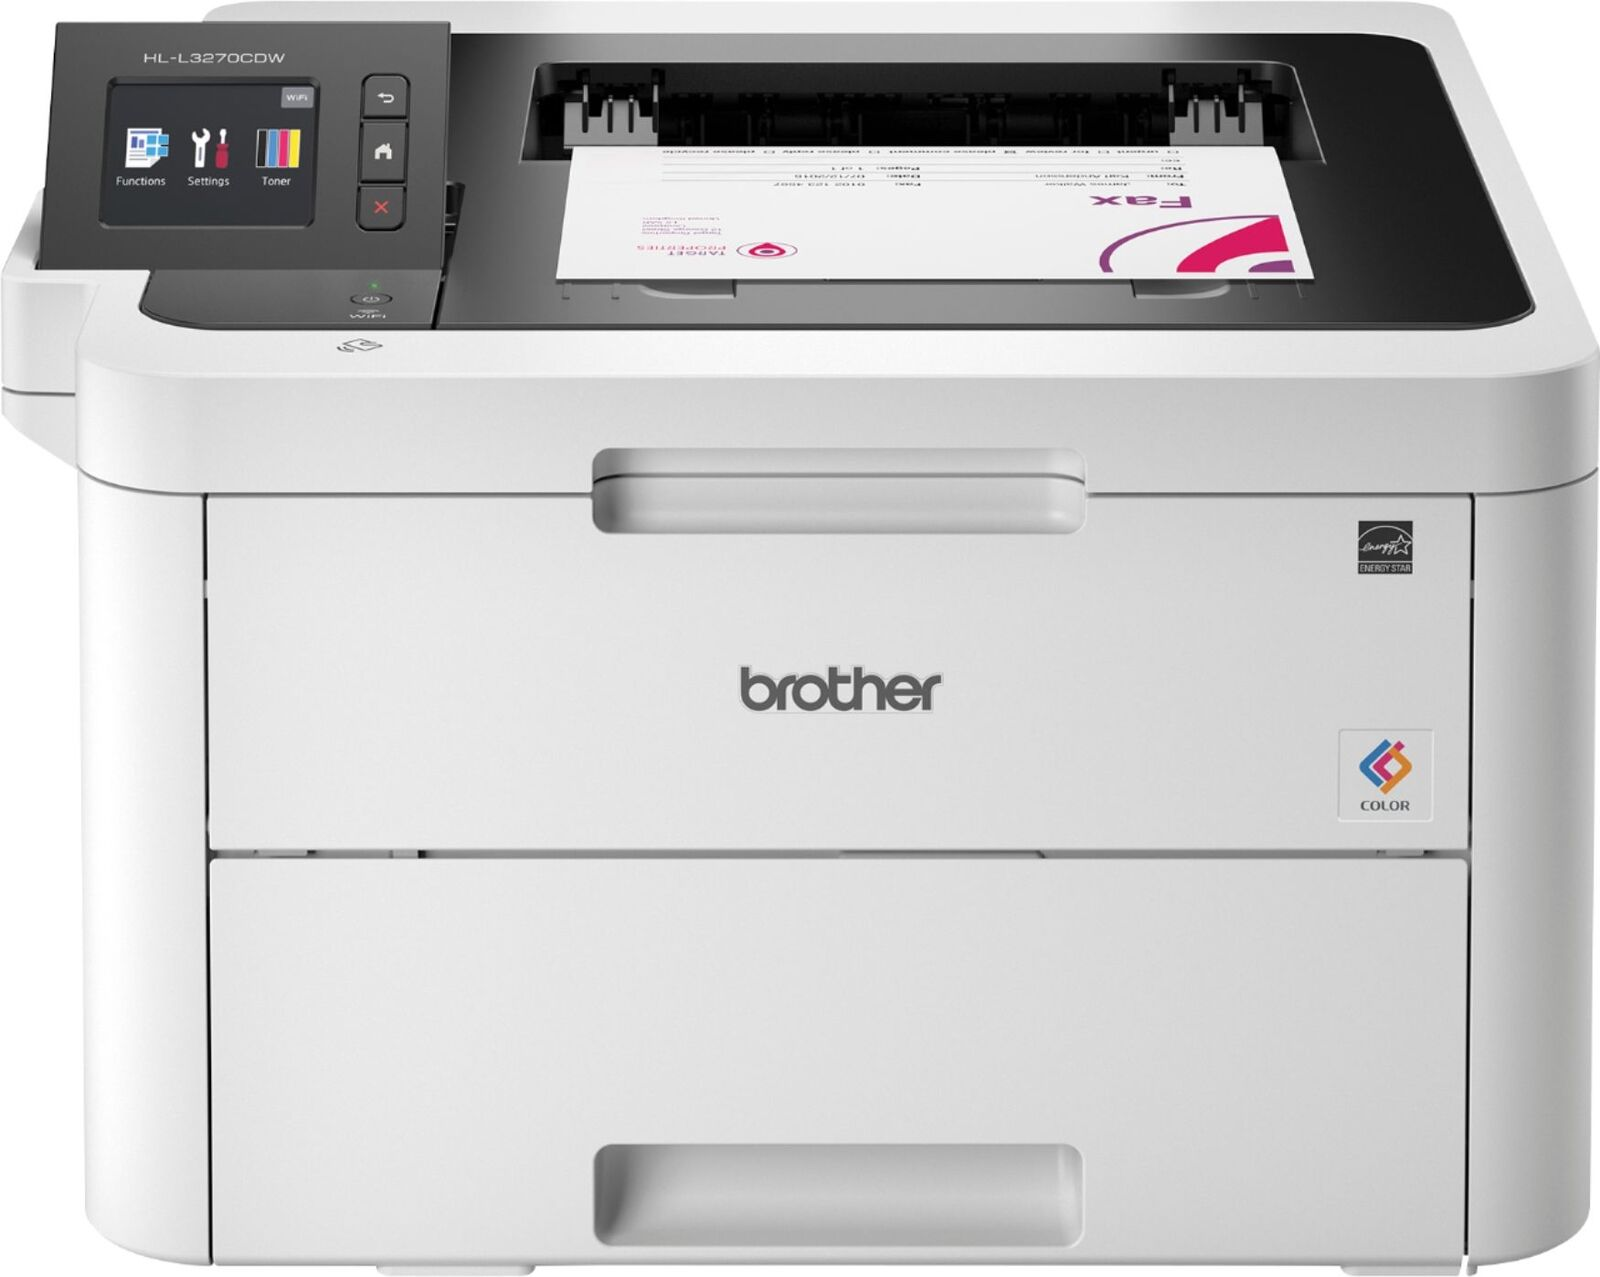 Brother - HL-L3270CDW Wireless Color Printer - White